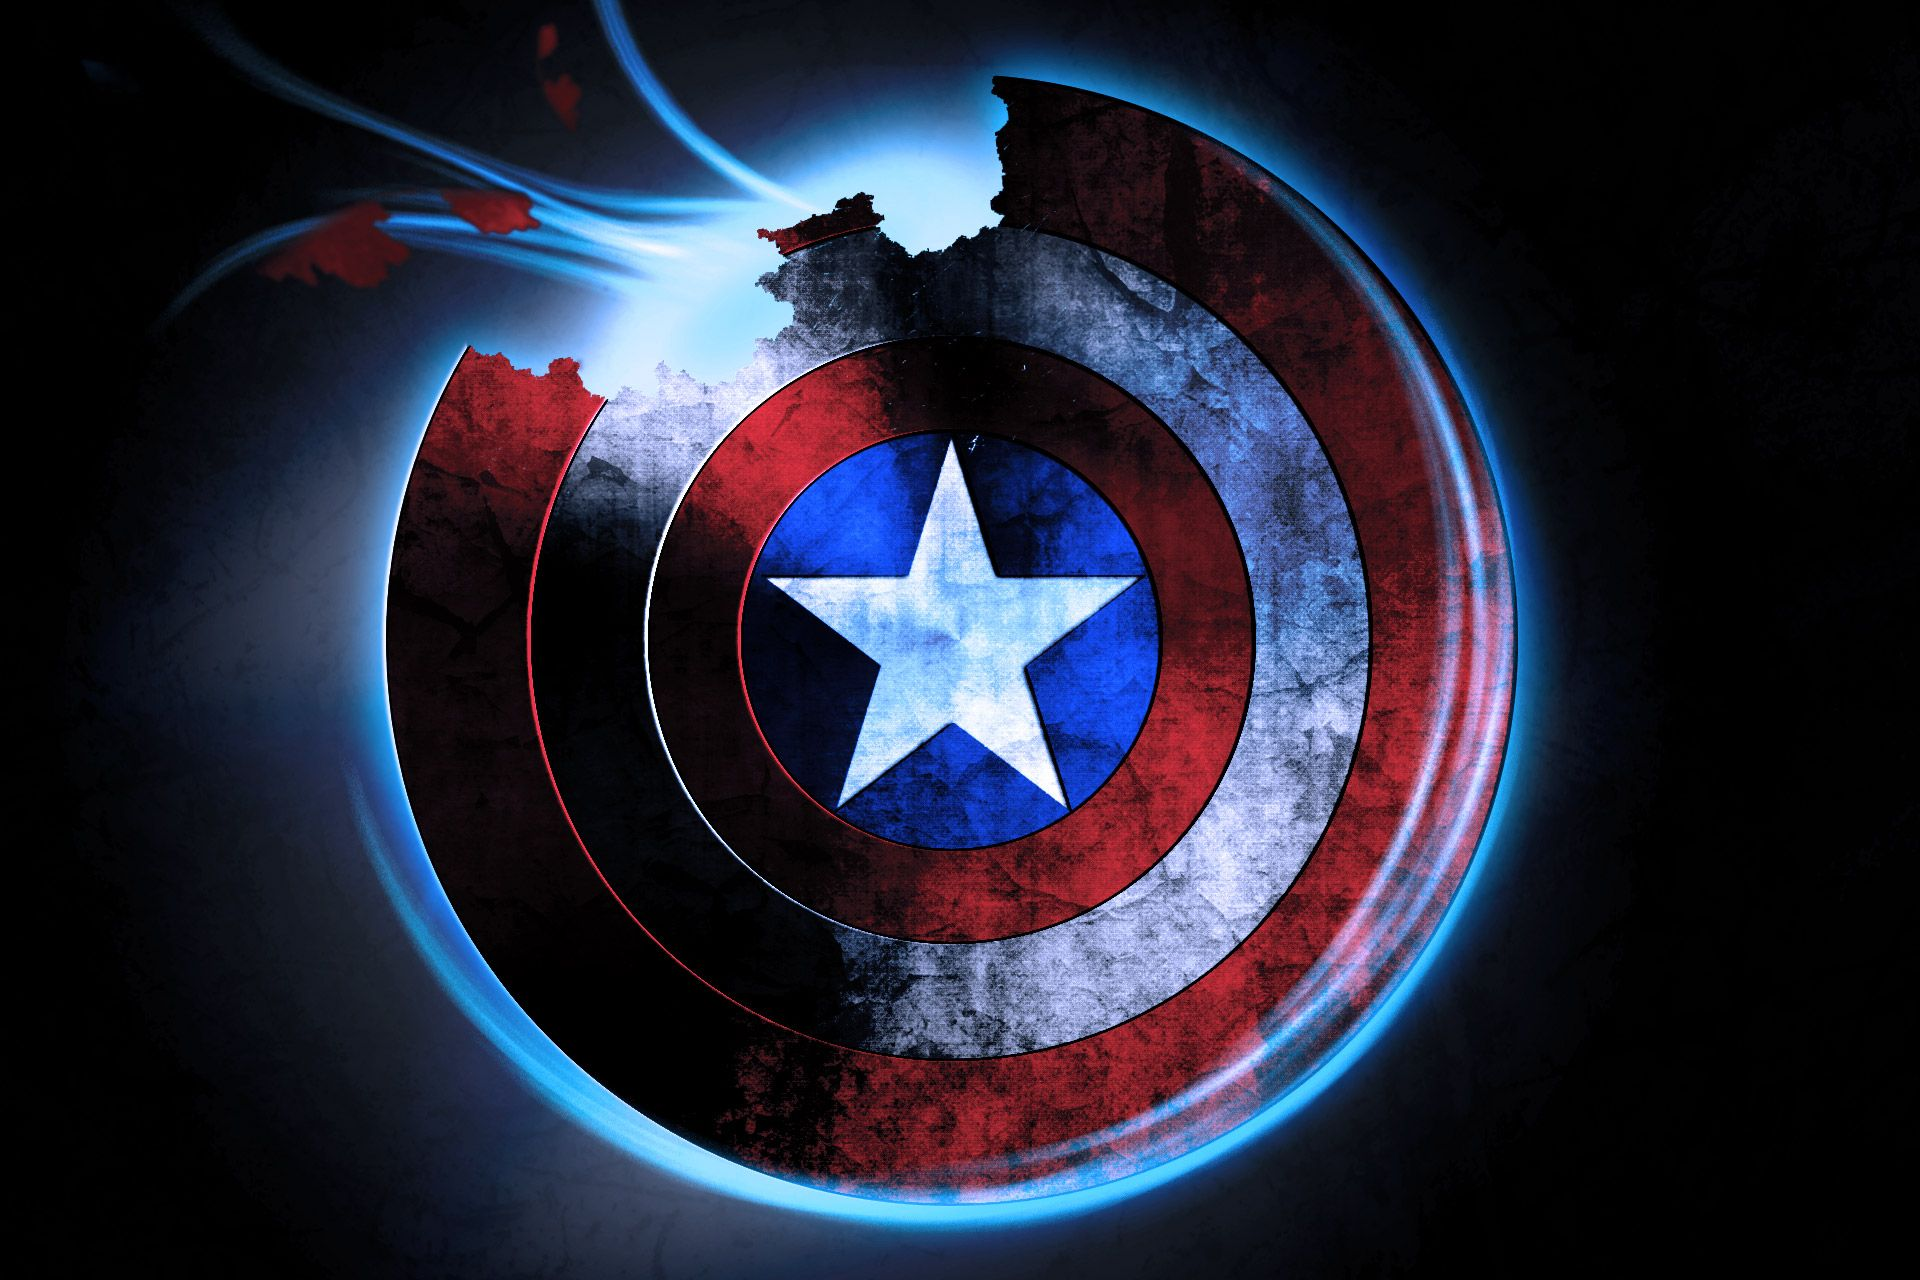 Hd wallpaper captain america - Captain America Wallpapers Wallpaper